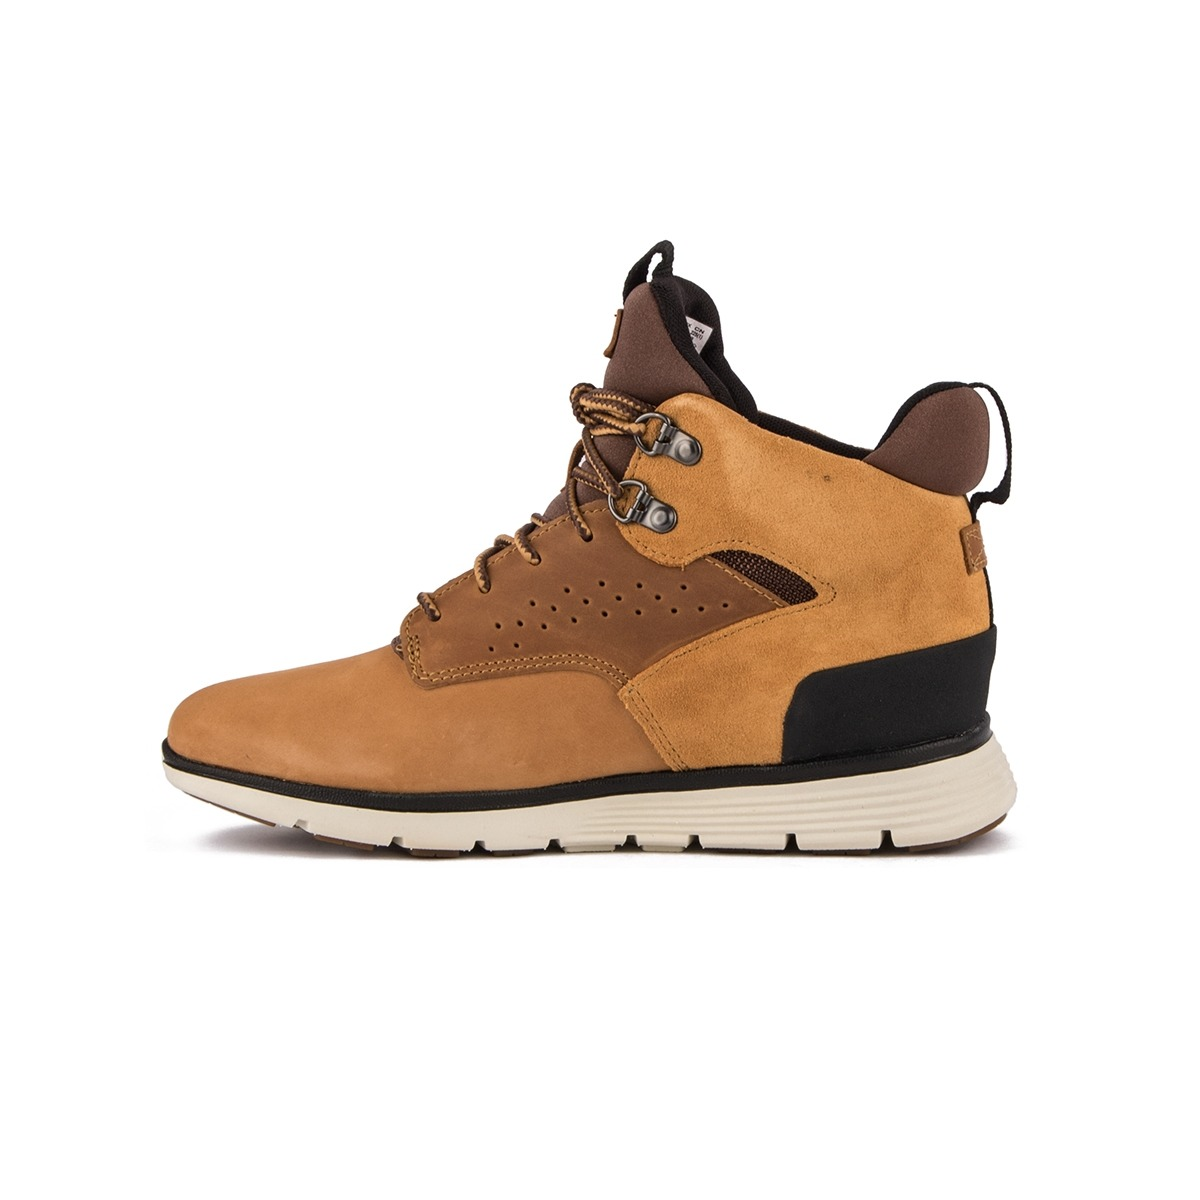 Timberland Bota Killington Hiker Chukka Wheat Amarillo Niño